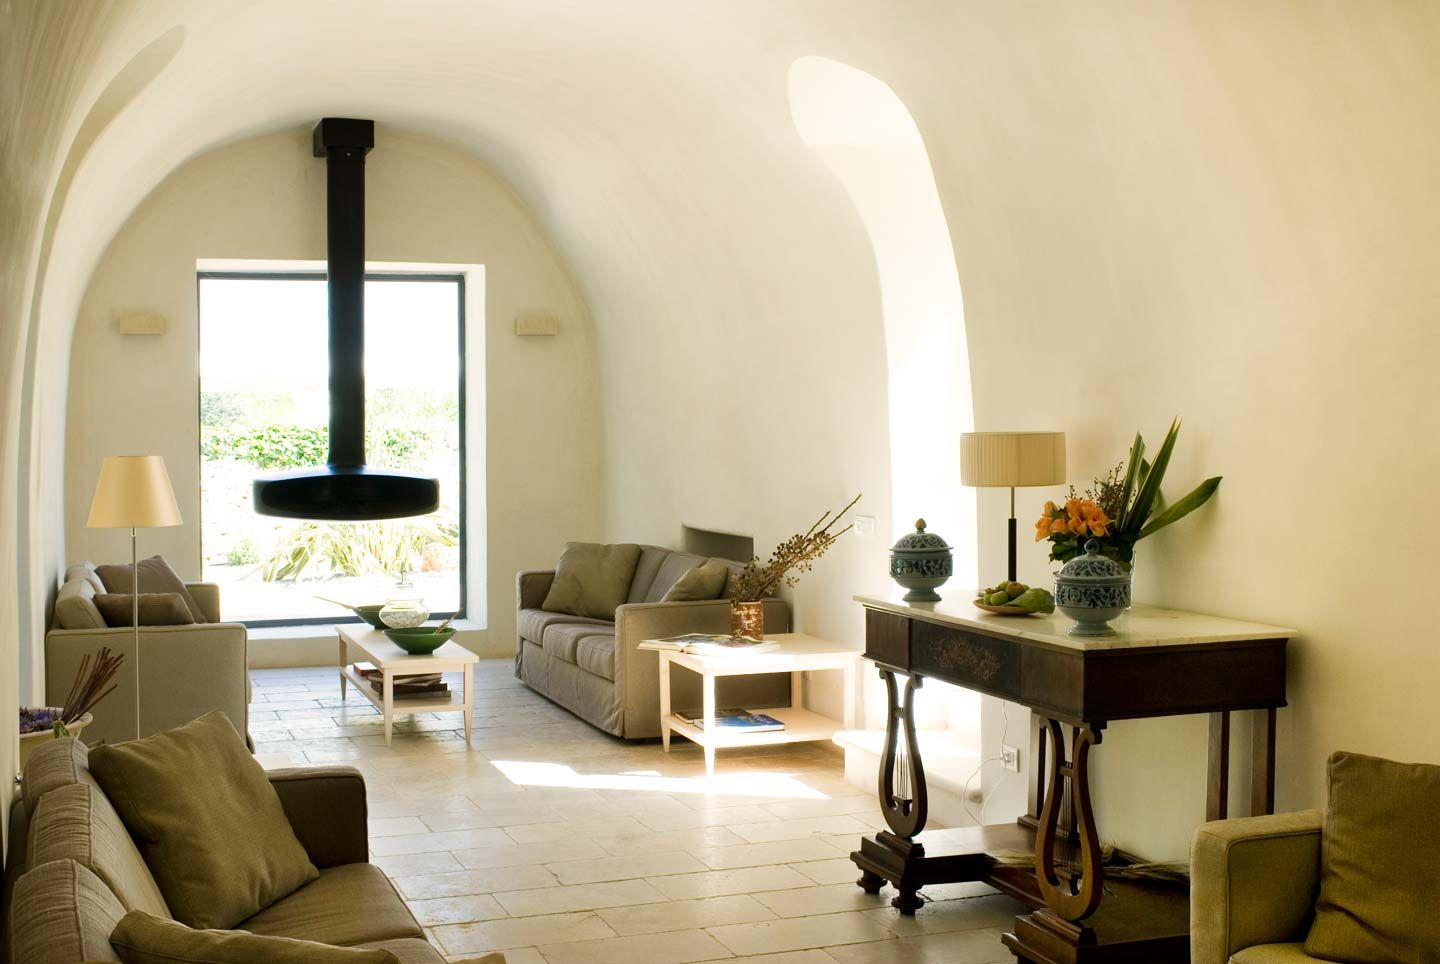 Architechture of a typical farmhouse in Apulia | Huise van Klein ...